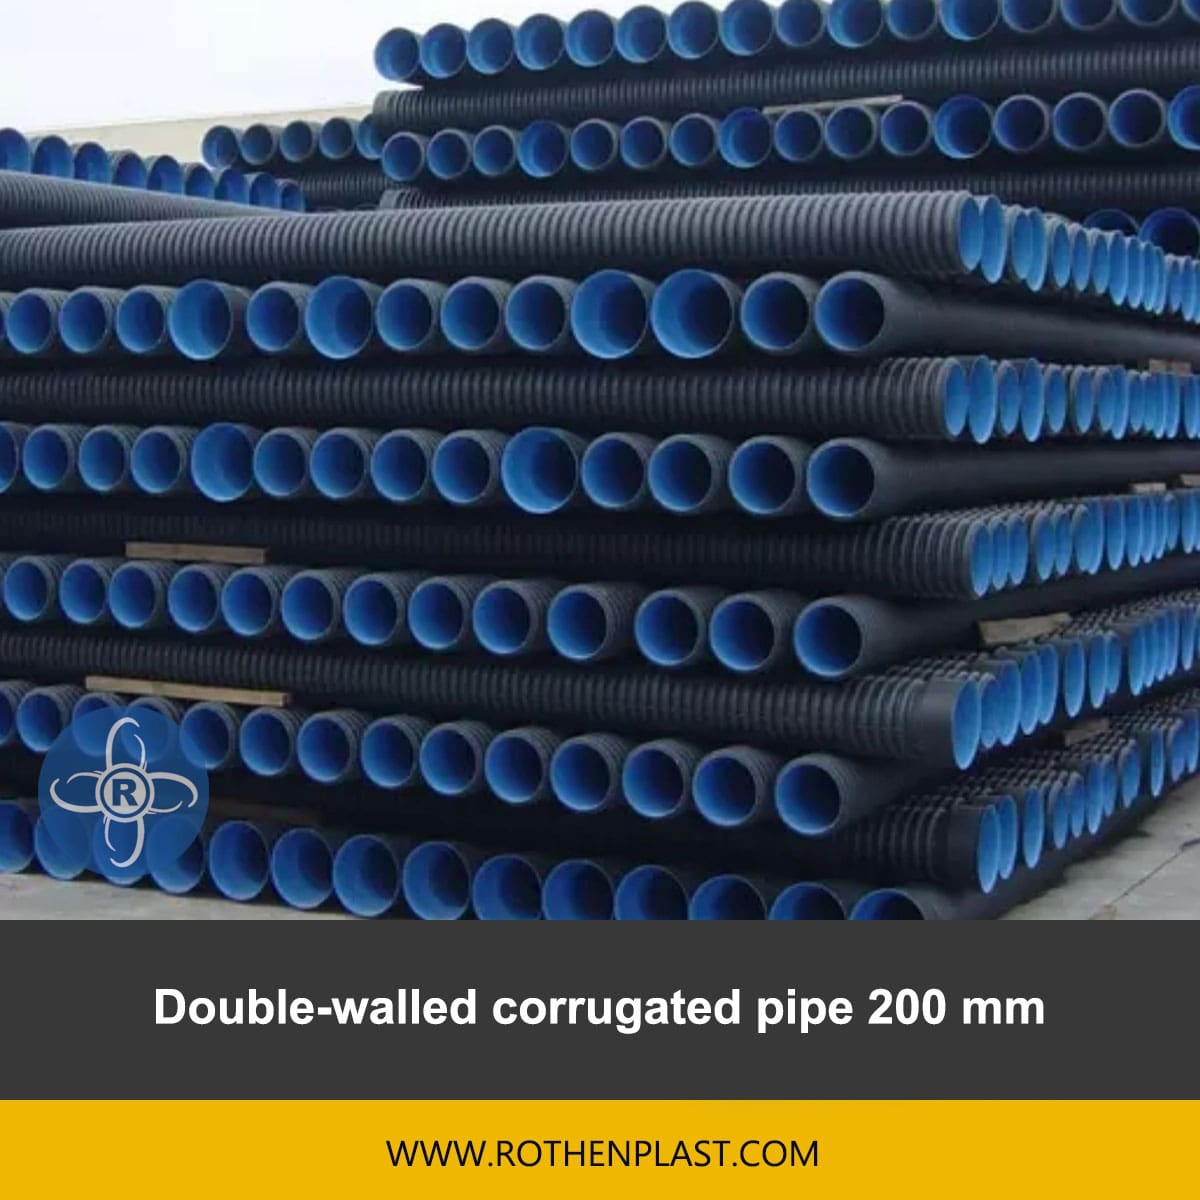 Double walled corrugated pipe 200 mm